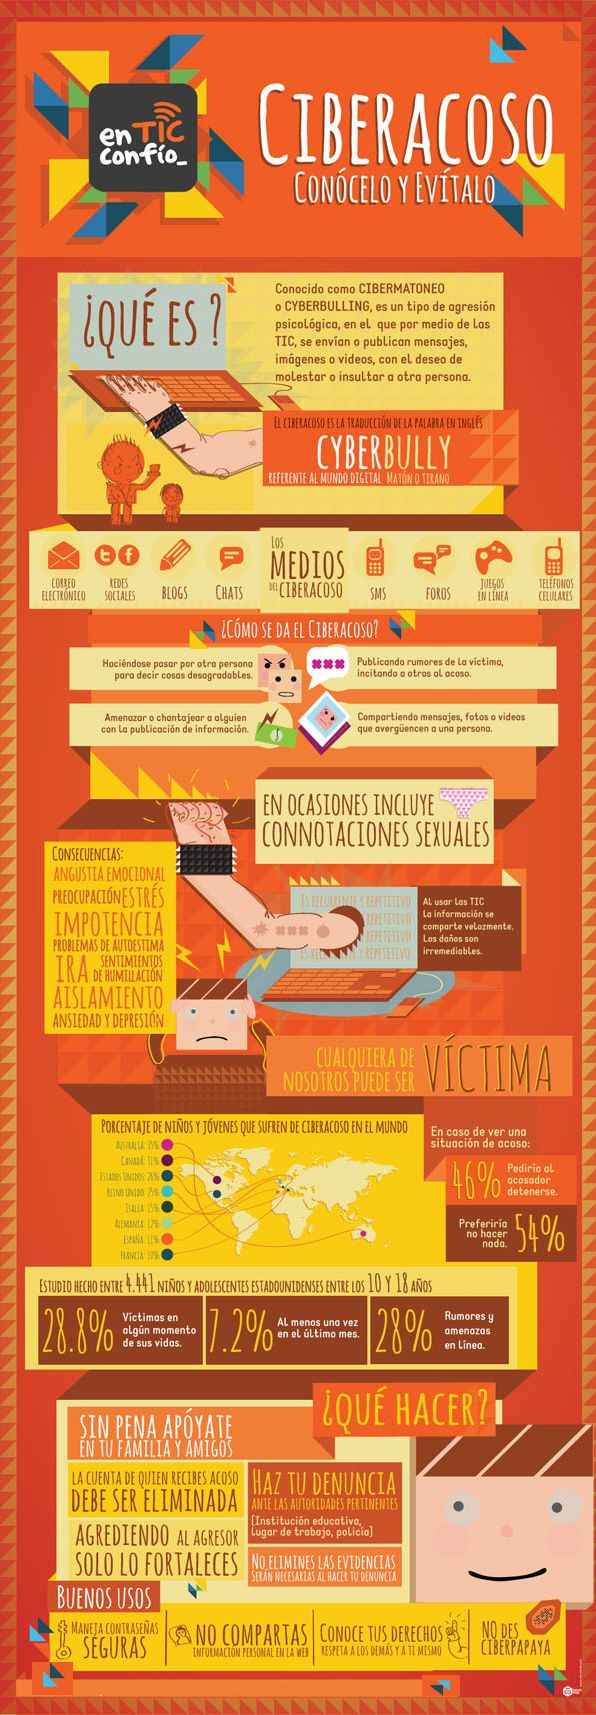 #Infographic #Infografia Cyberbullying: Know and Avoid,Ciberacoso: Conócelo y evítalo...